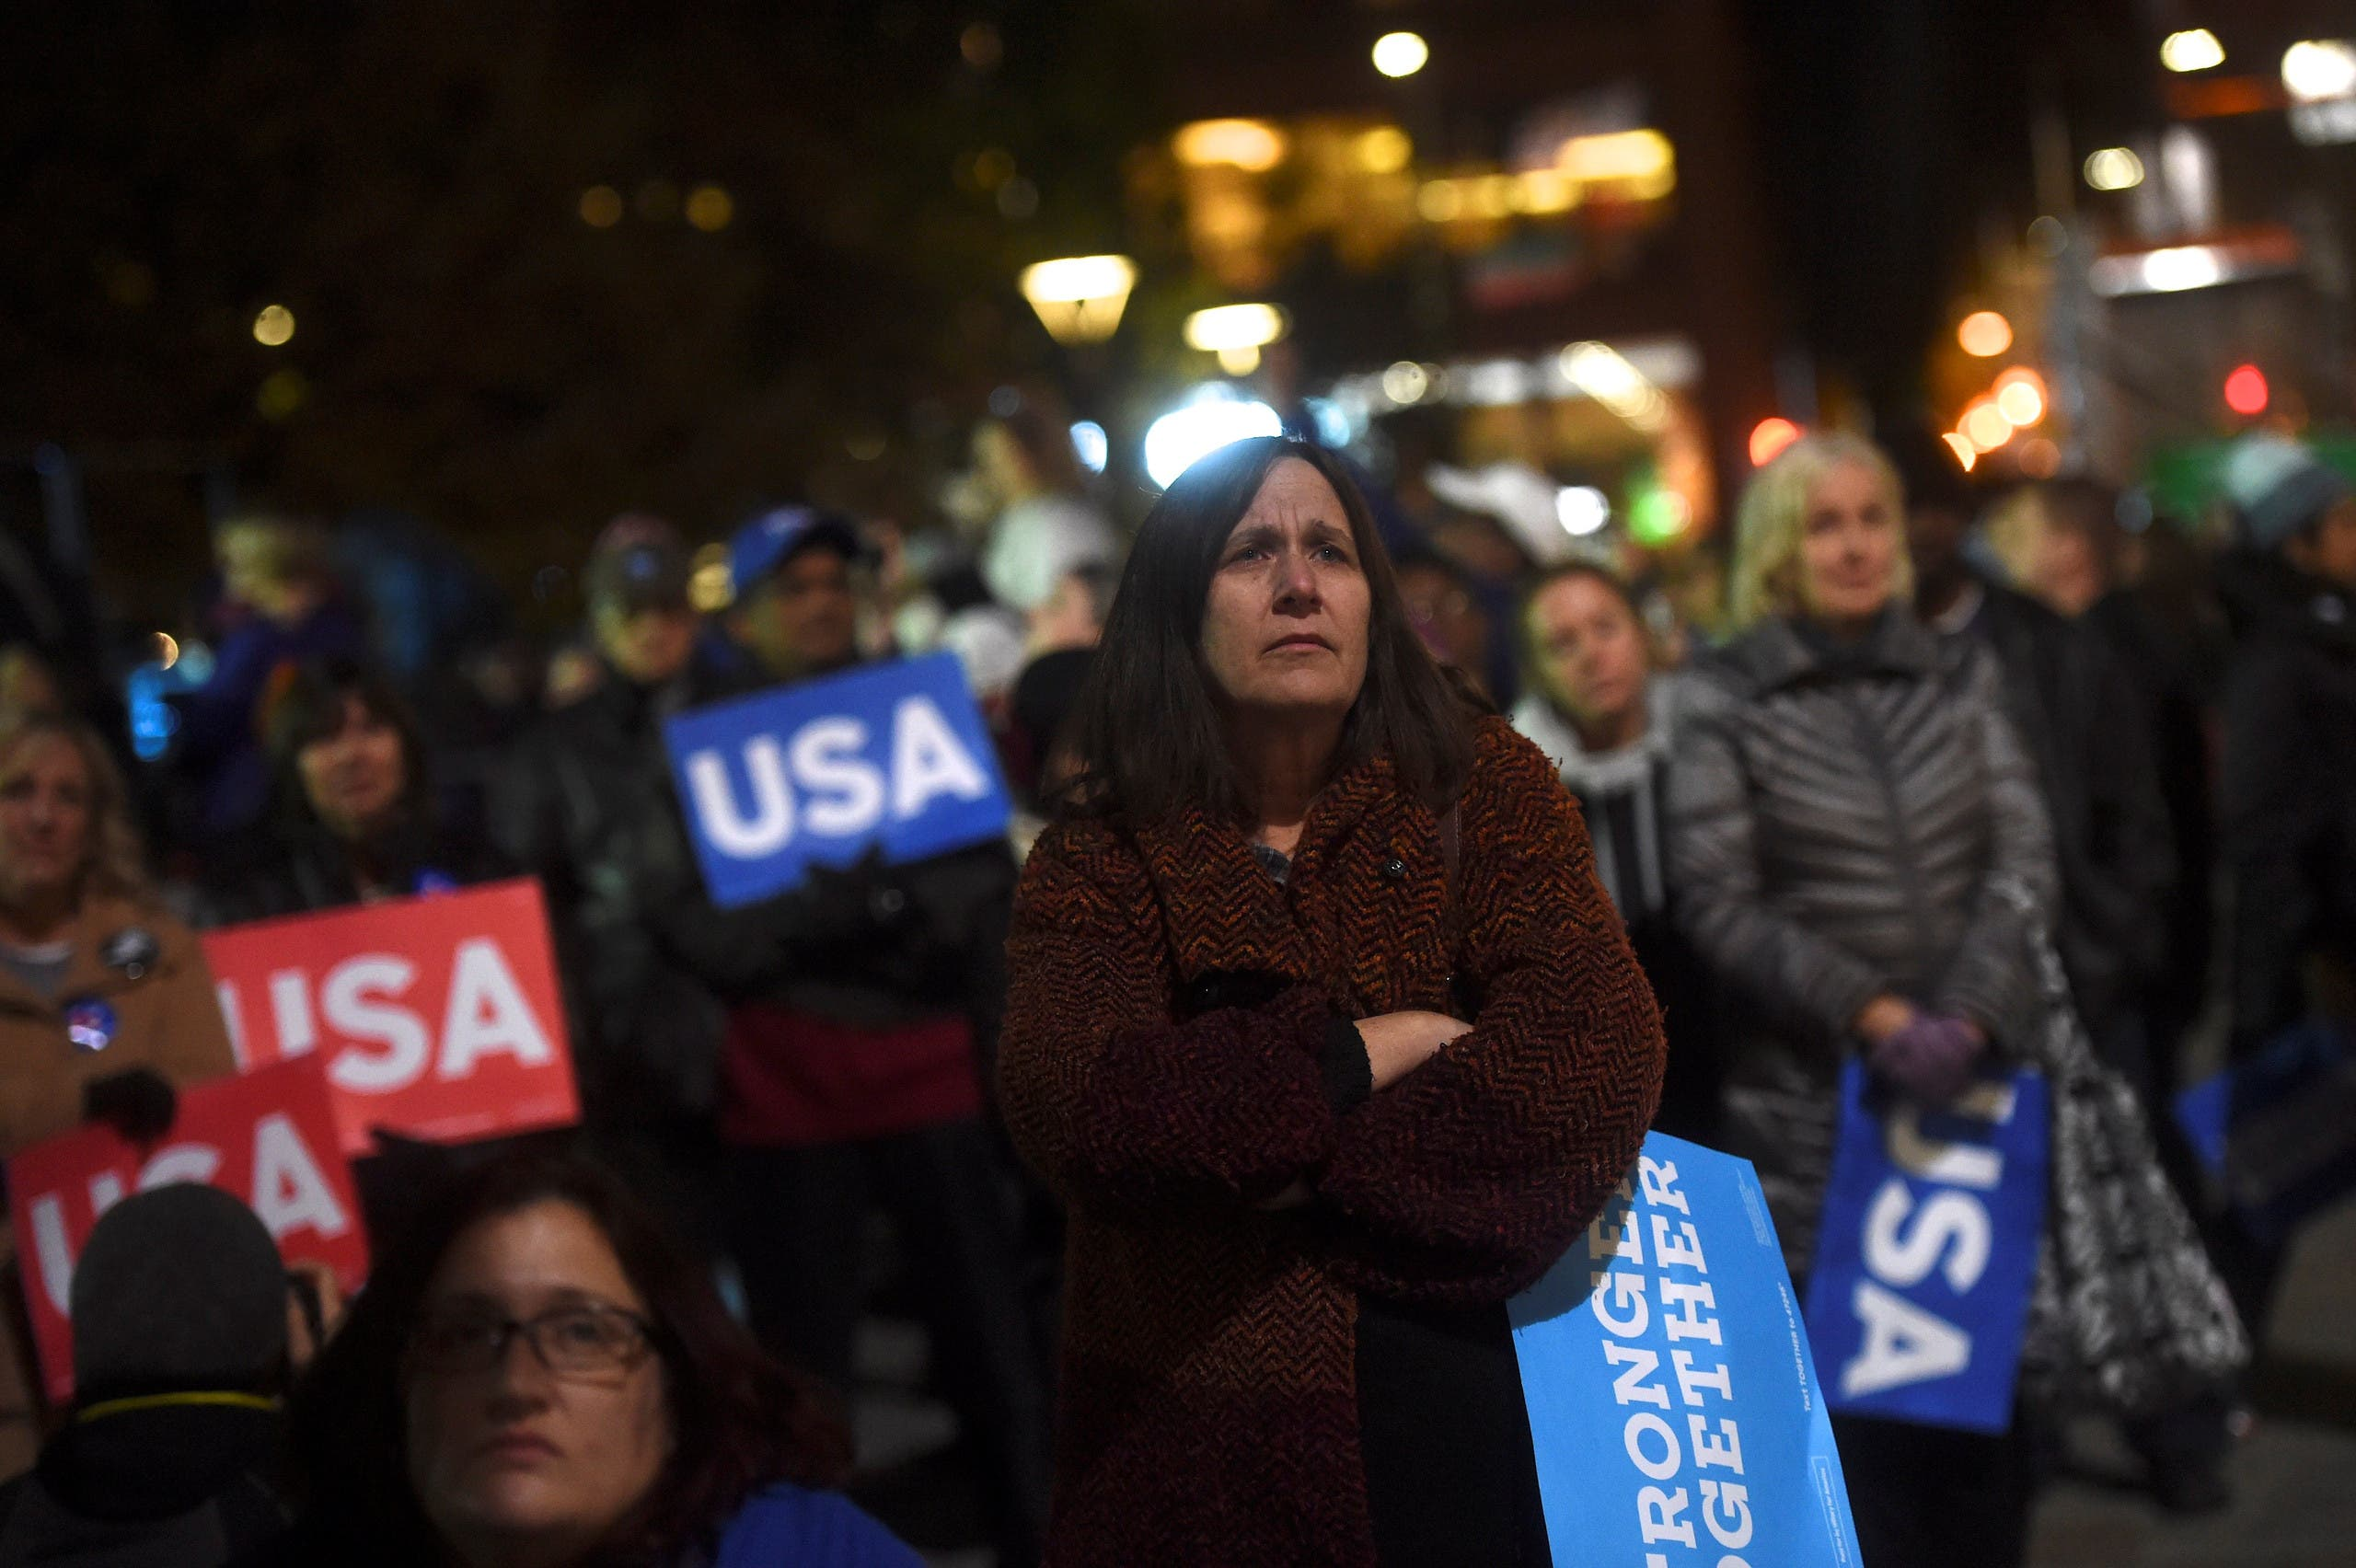 US elections Hillary Clinton supporters listen to the U.S. Democratic presidential candidate during her final rally at Independence Hall on the eve of election day in Philadelphia, Pennsylvania November 7, 2016. (Reuters)